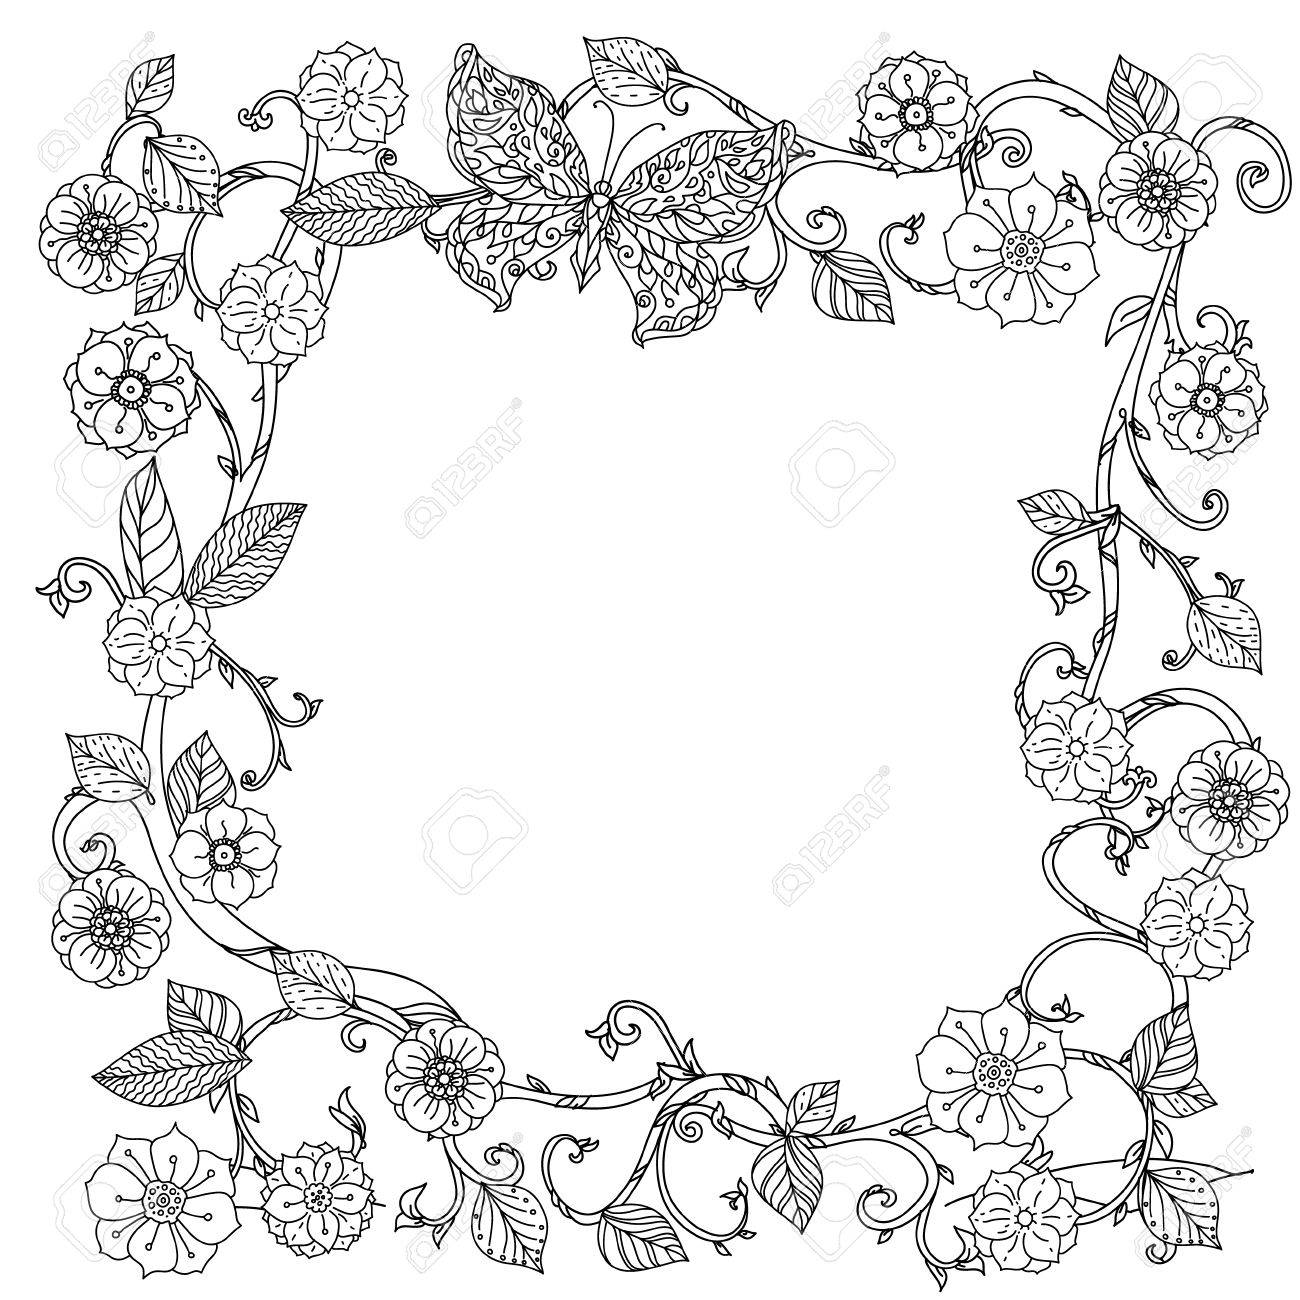 Uncoloured Black And White Flowers Frame For Adult Coloring Book